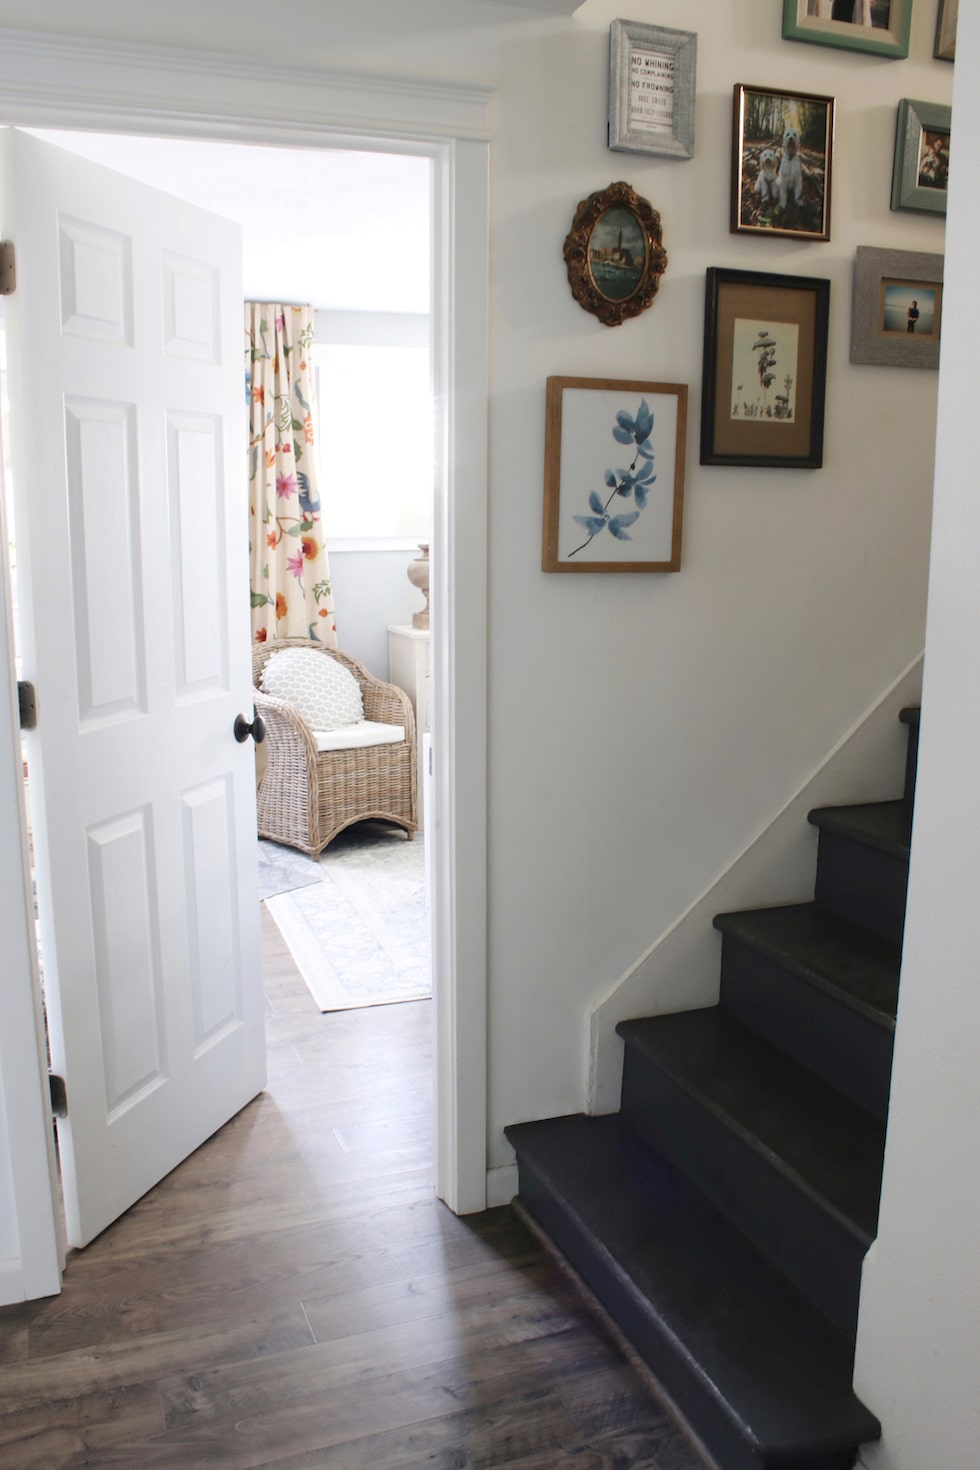 Transforming a 1950s Brick Ranch to a Charming Coastal Cottage - Before & Afters